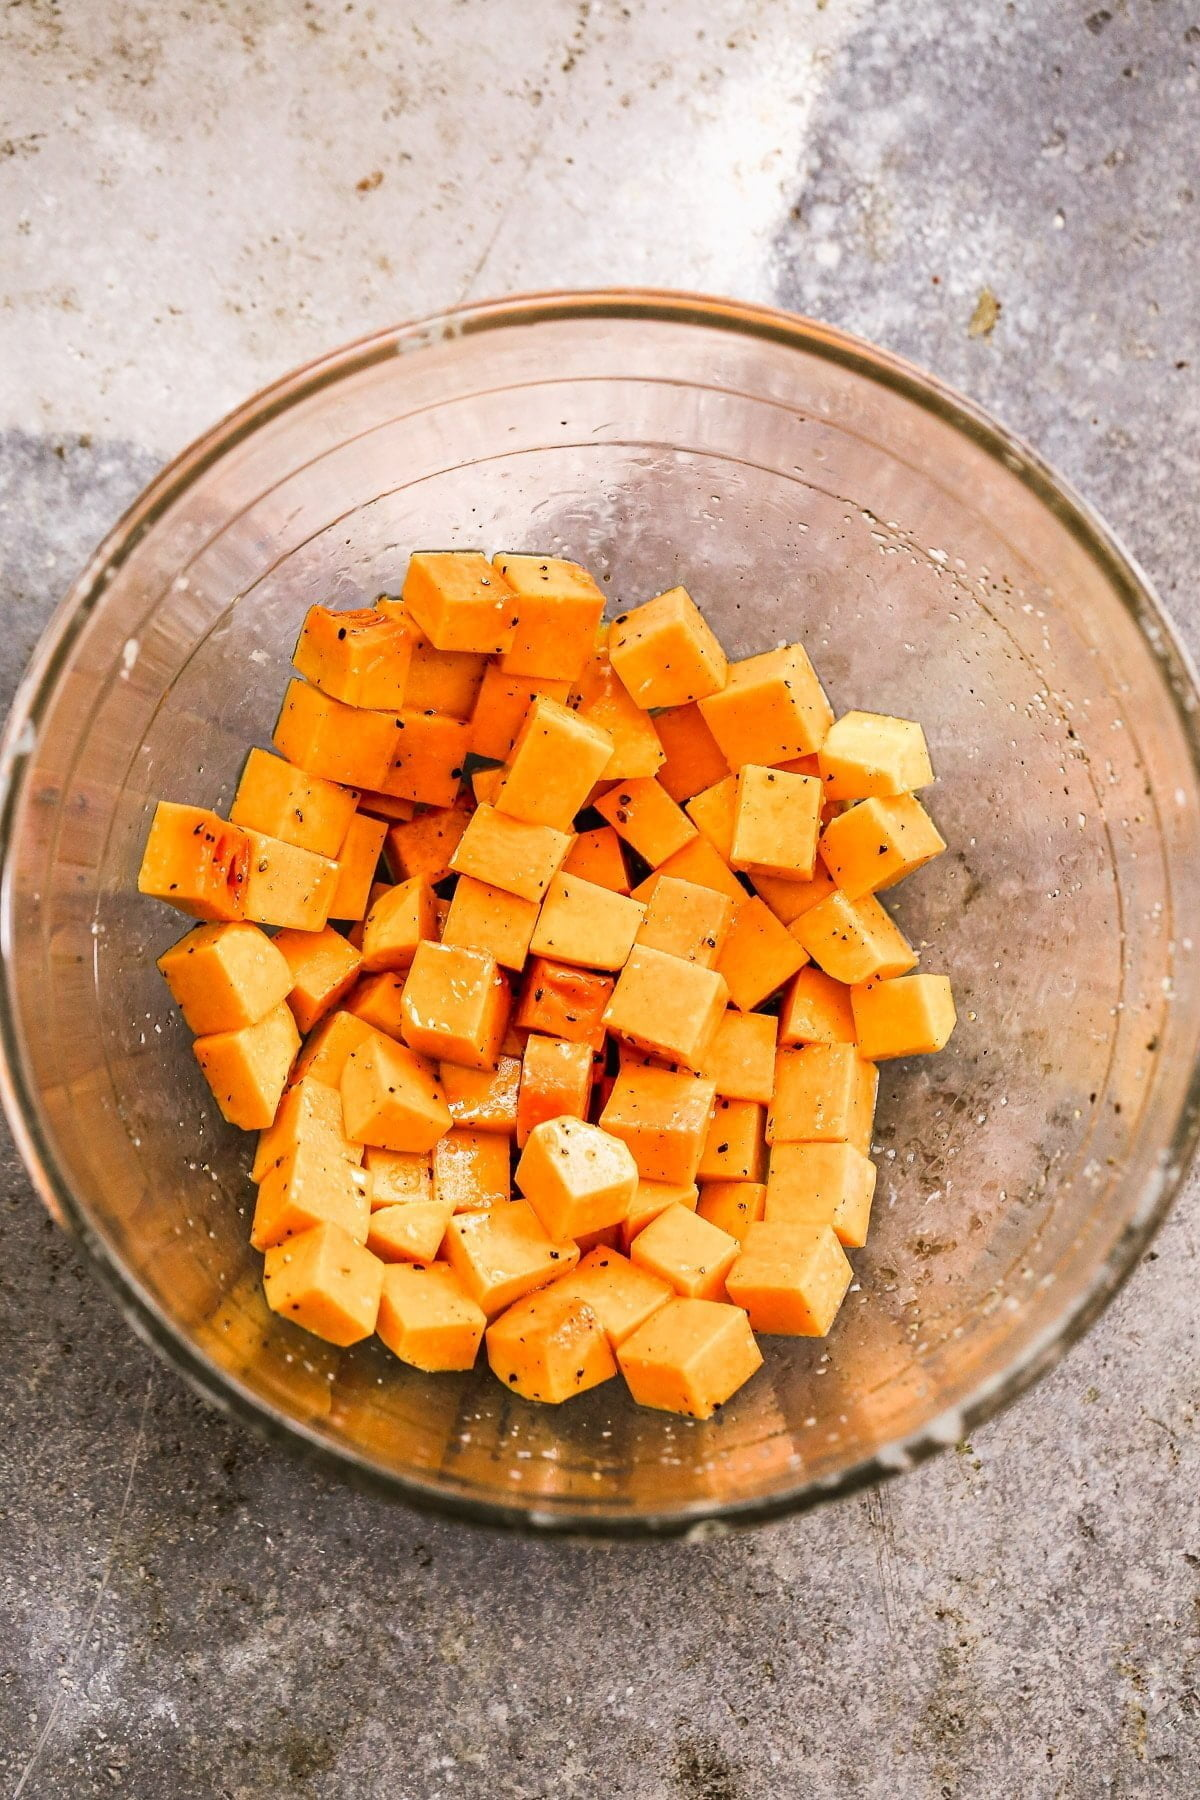 Diced butternut squash tossed in olive oil, salt and pepper